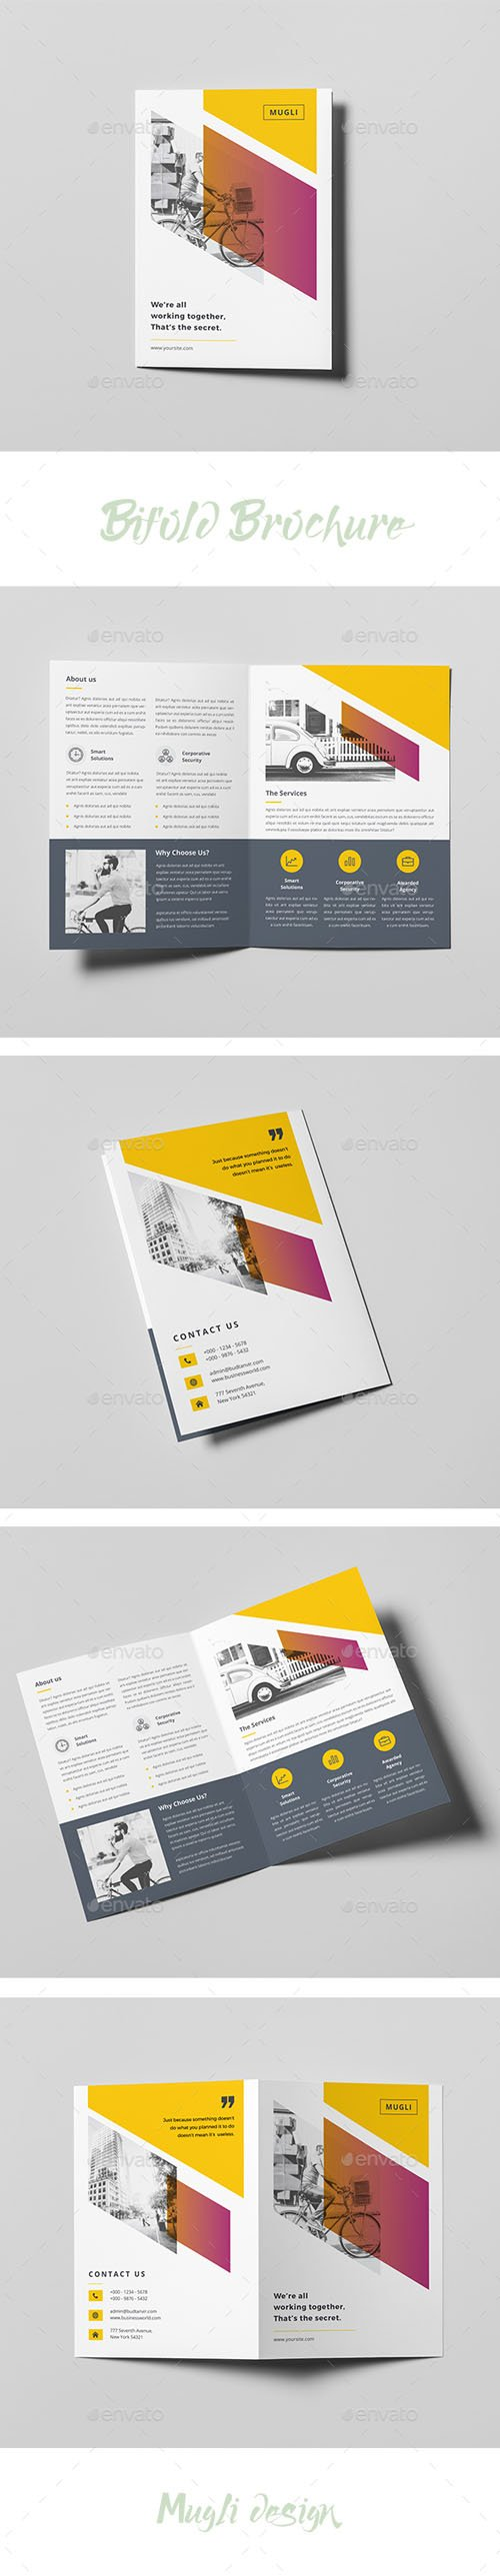 Graphicriver - Bifold Brochure 20184697